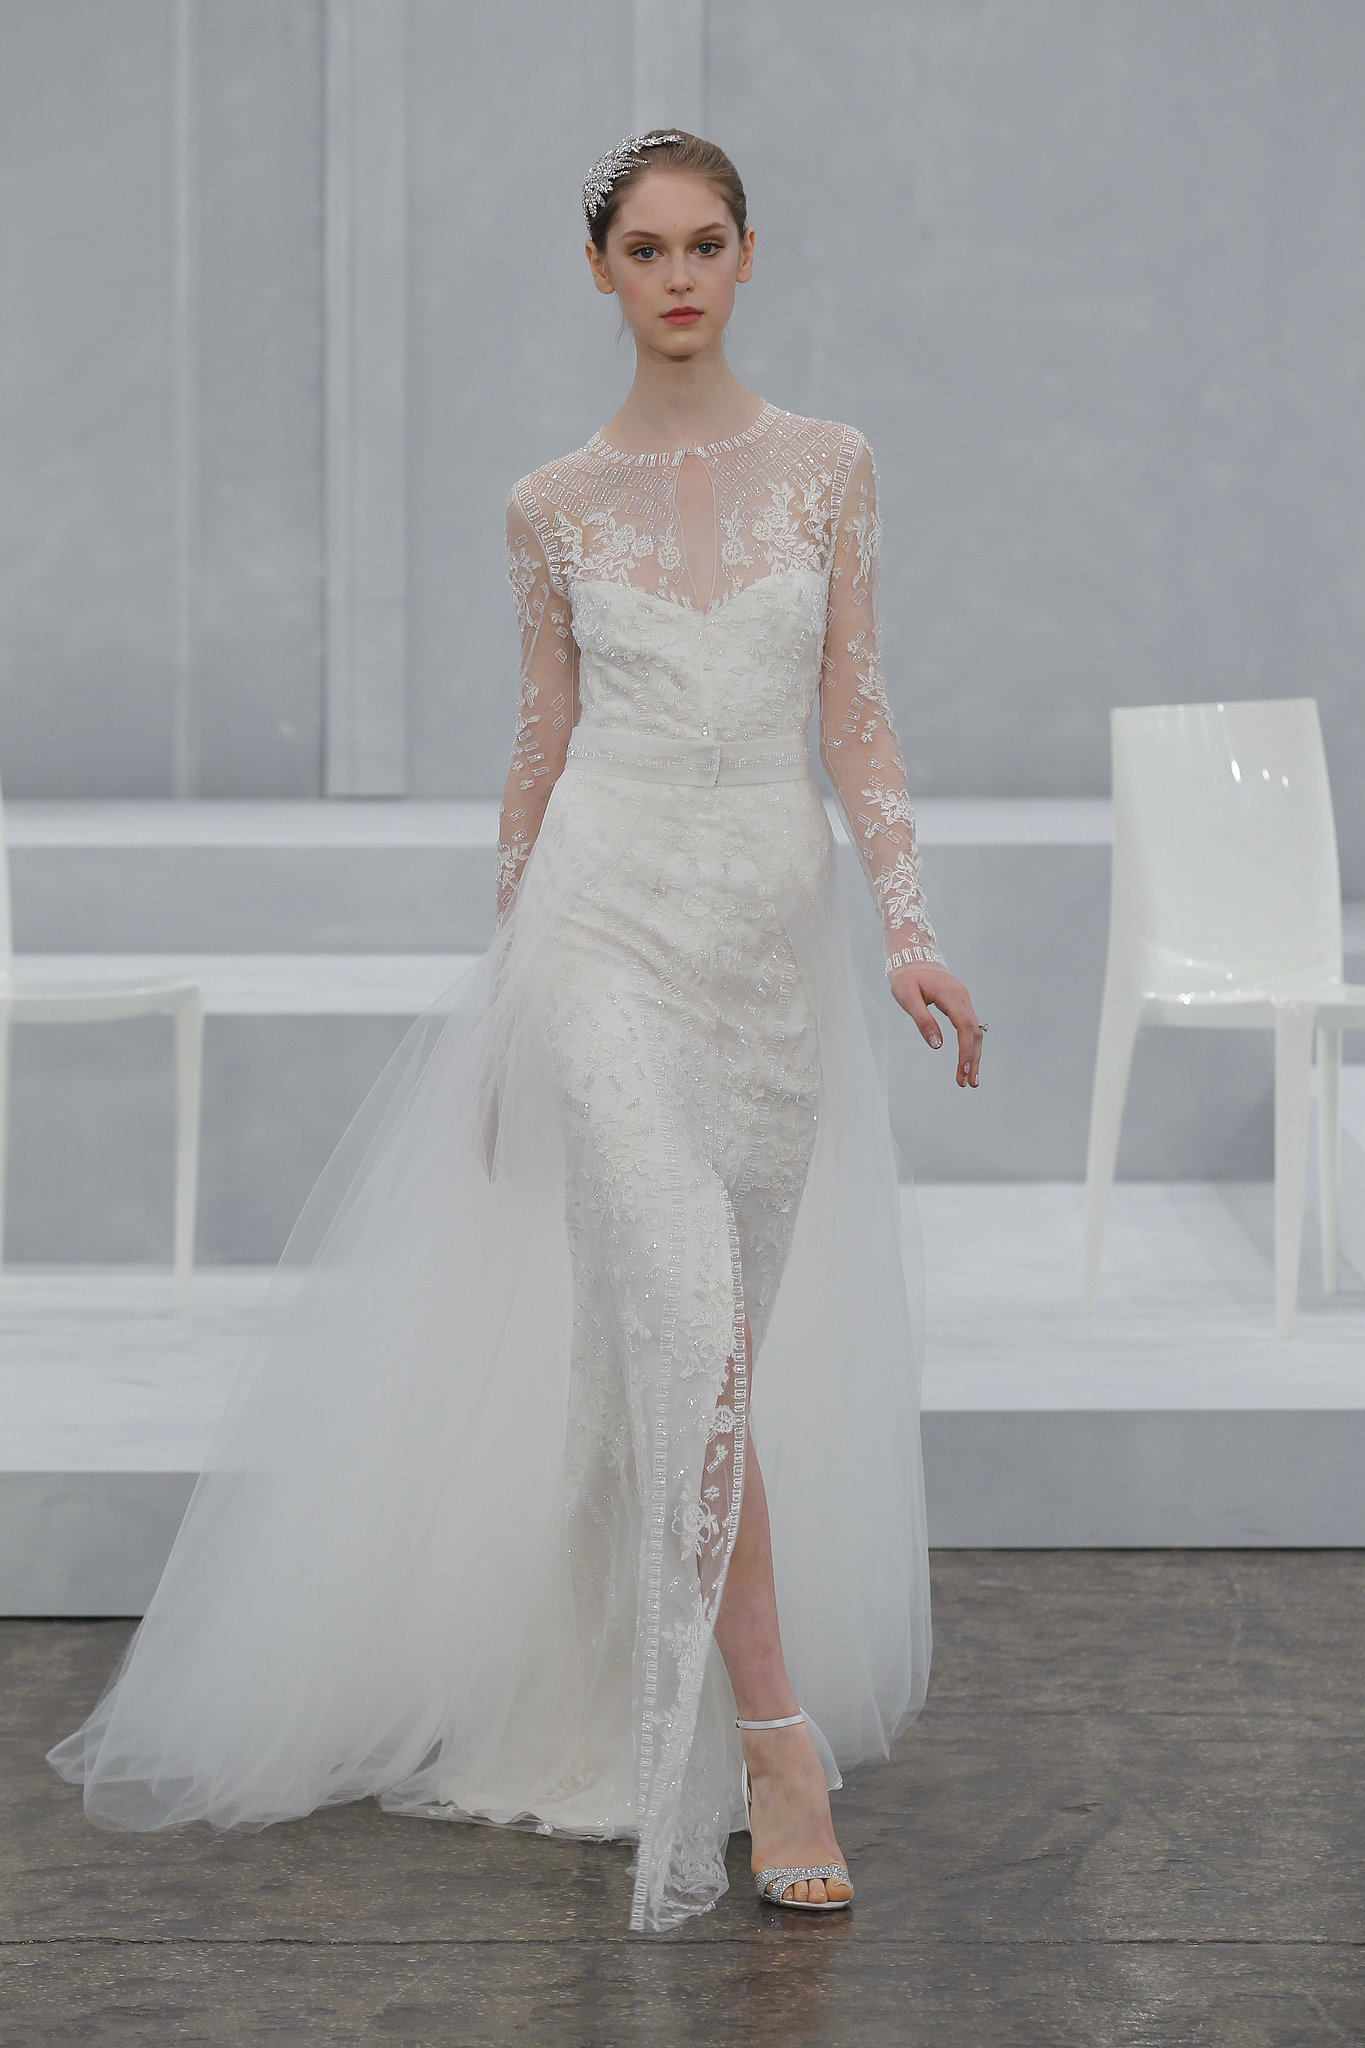 Screen Siren Slit Wedding Dress from Monique Lhuillier's Spring 2015 Bridal Collection